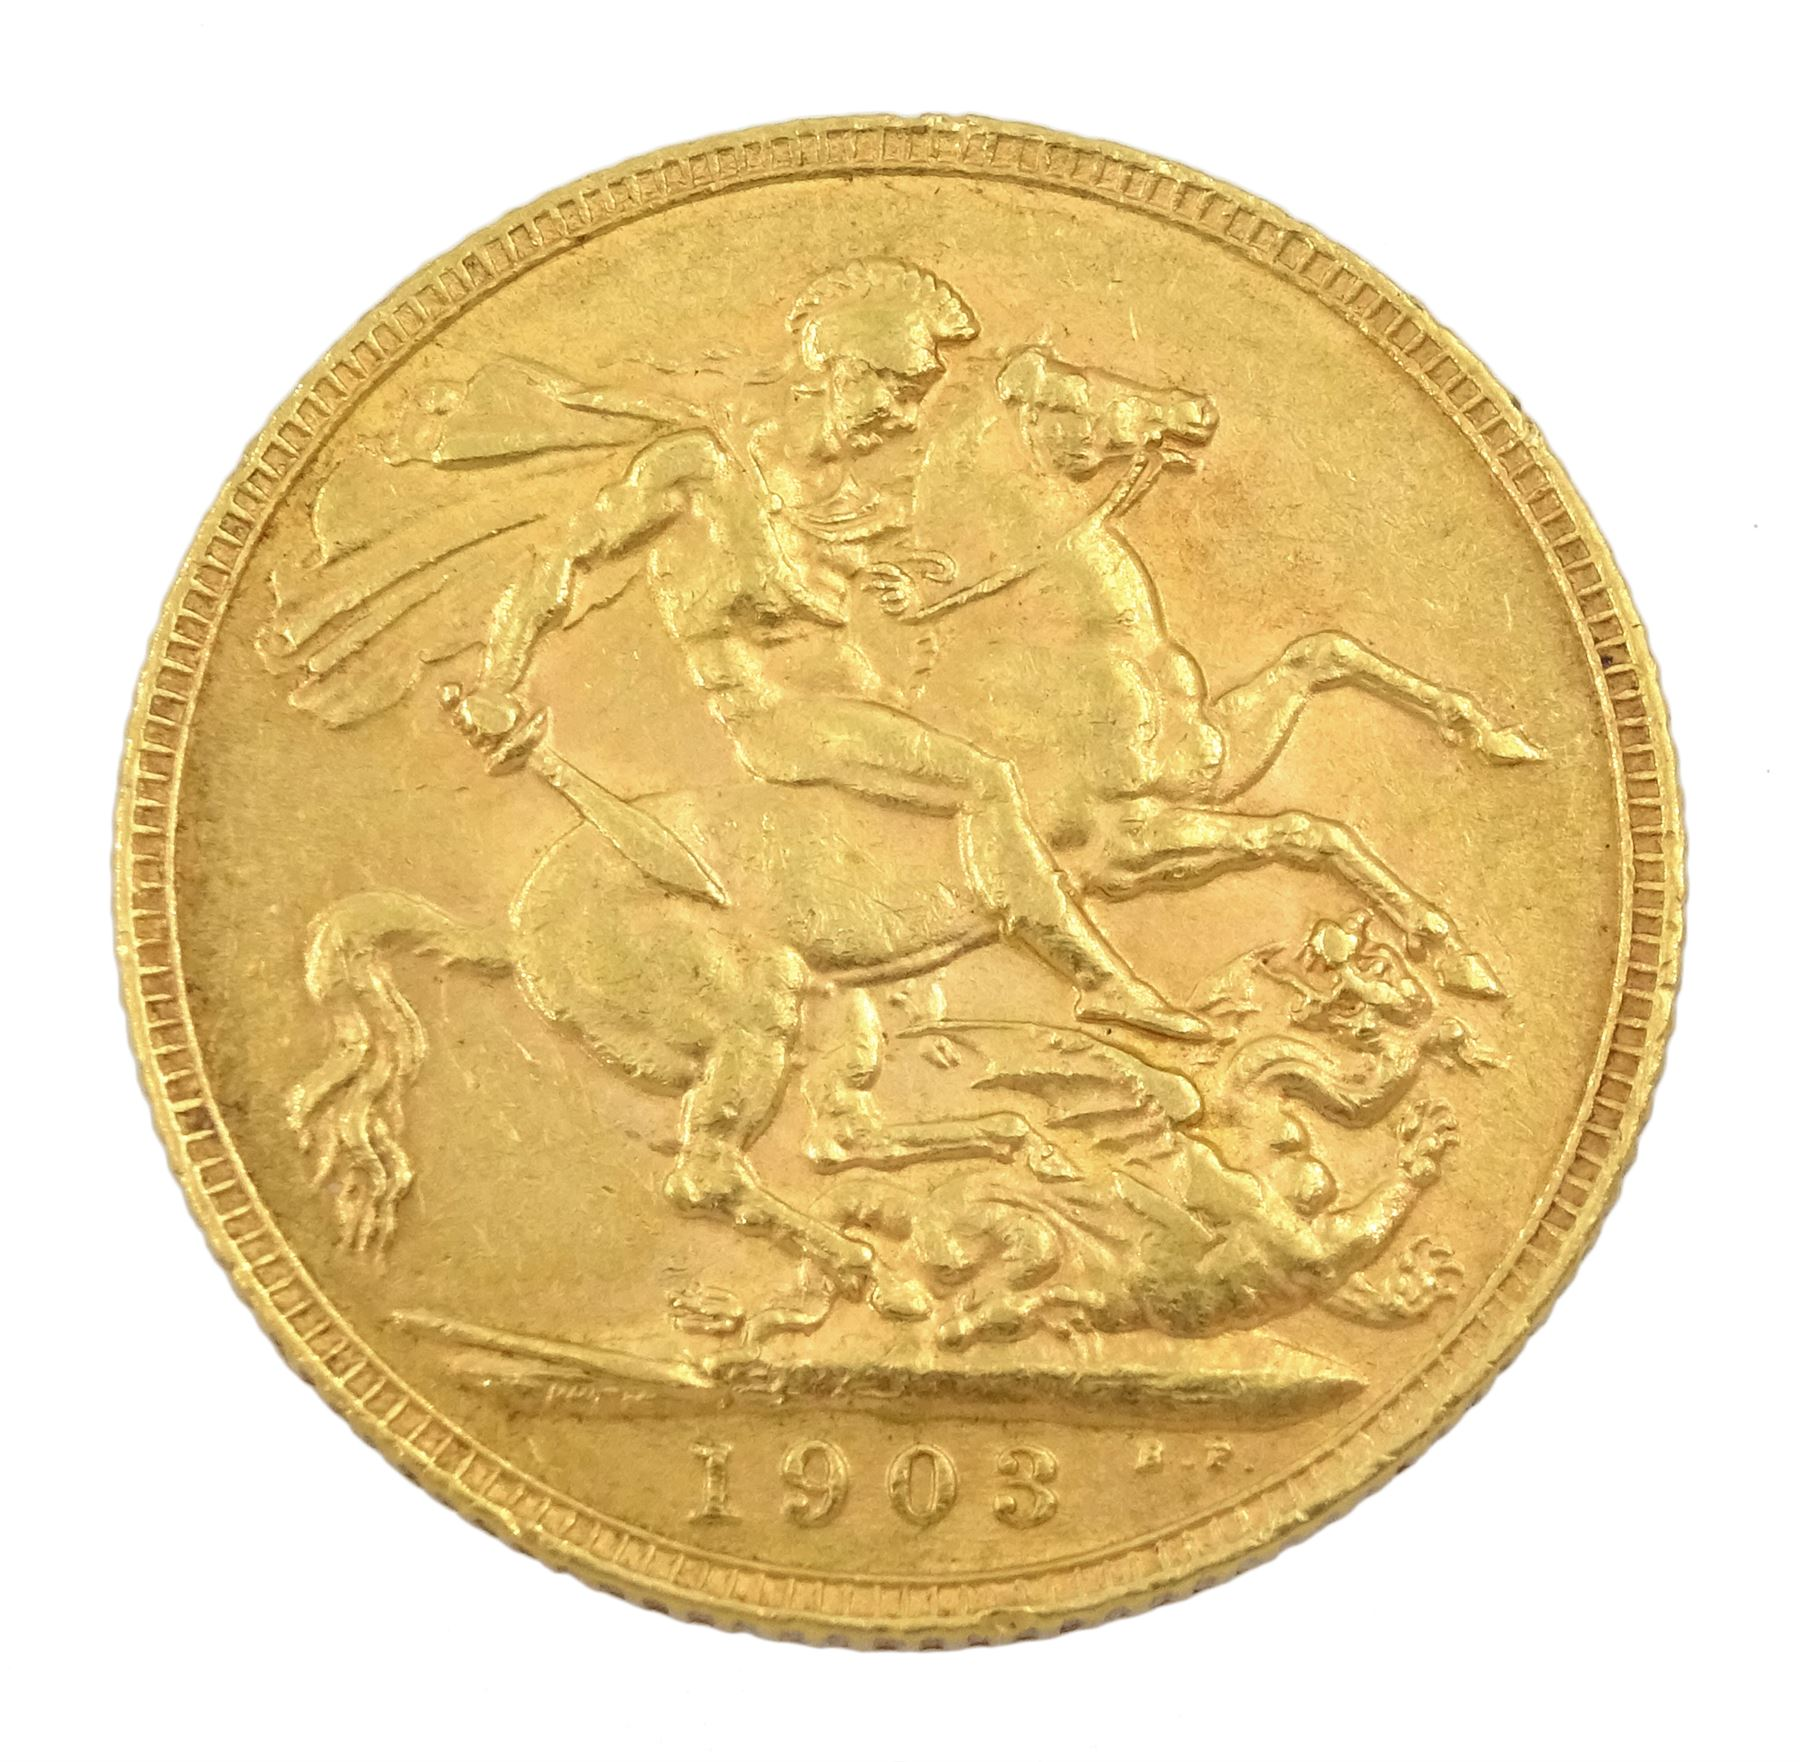 King Edward VII 1903 gold full sovereign coin - Image 2 of 2